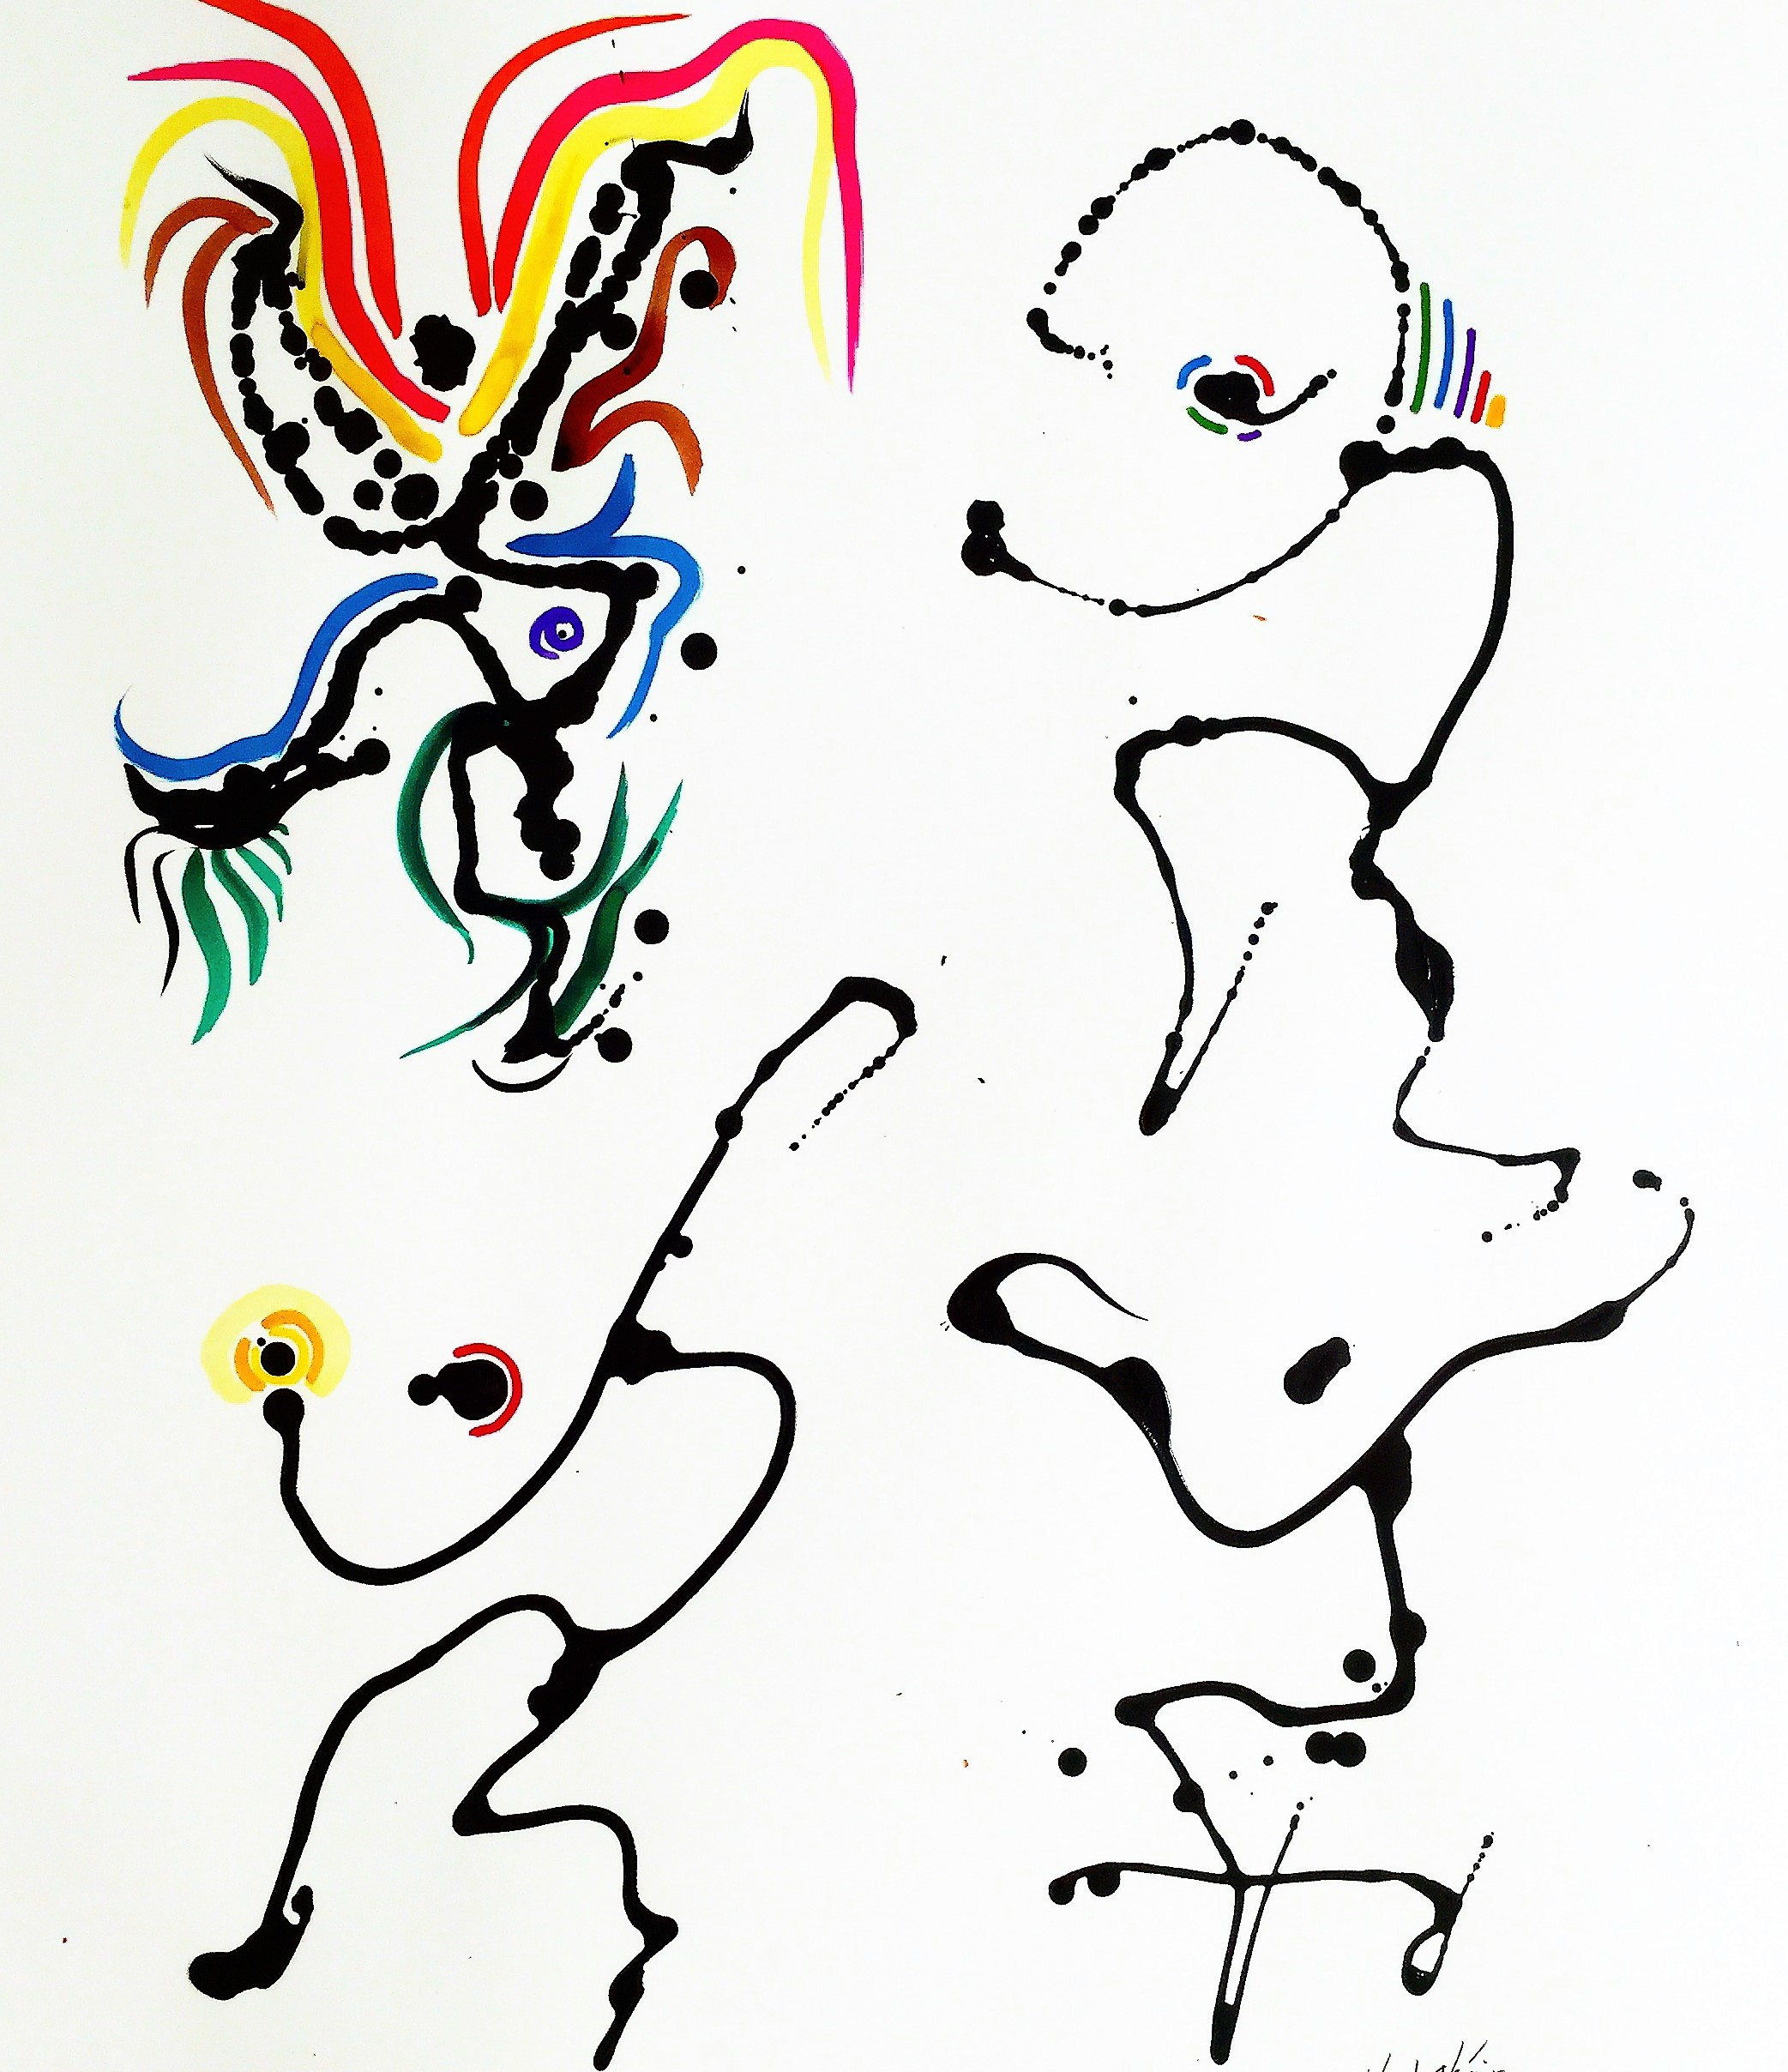 5_Dancers - ink callidroptik - 23 in x 29 in